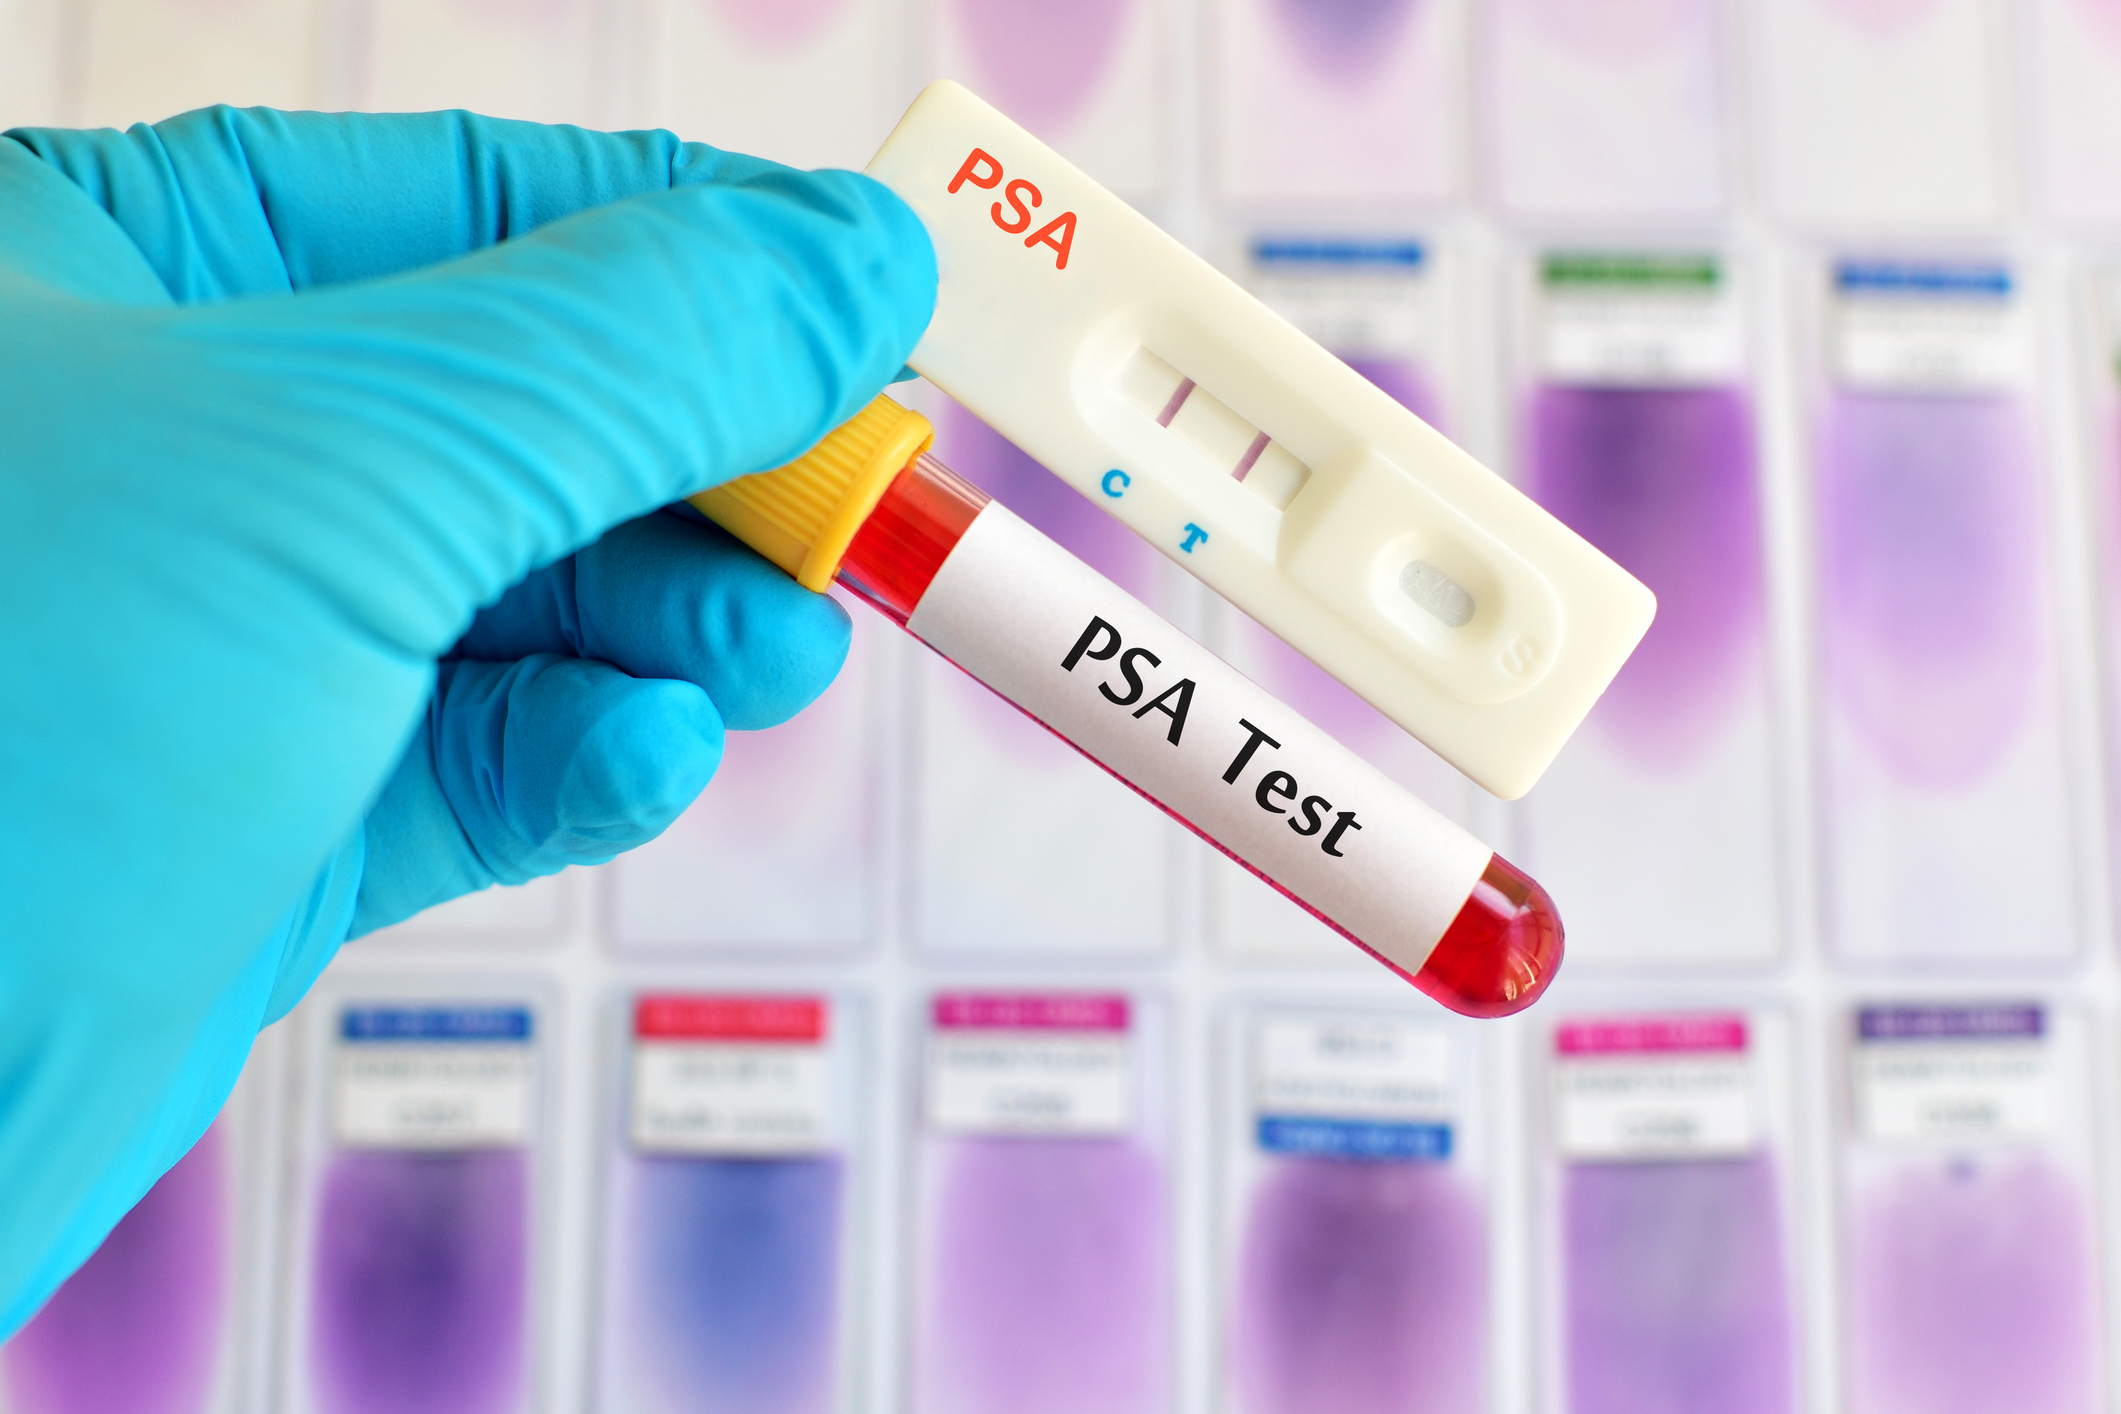 Panel changes recommendation on PSA testing